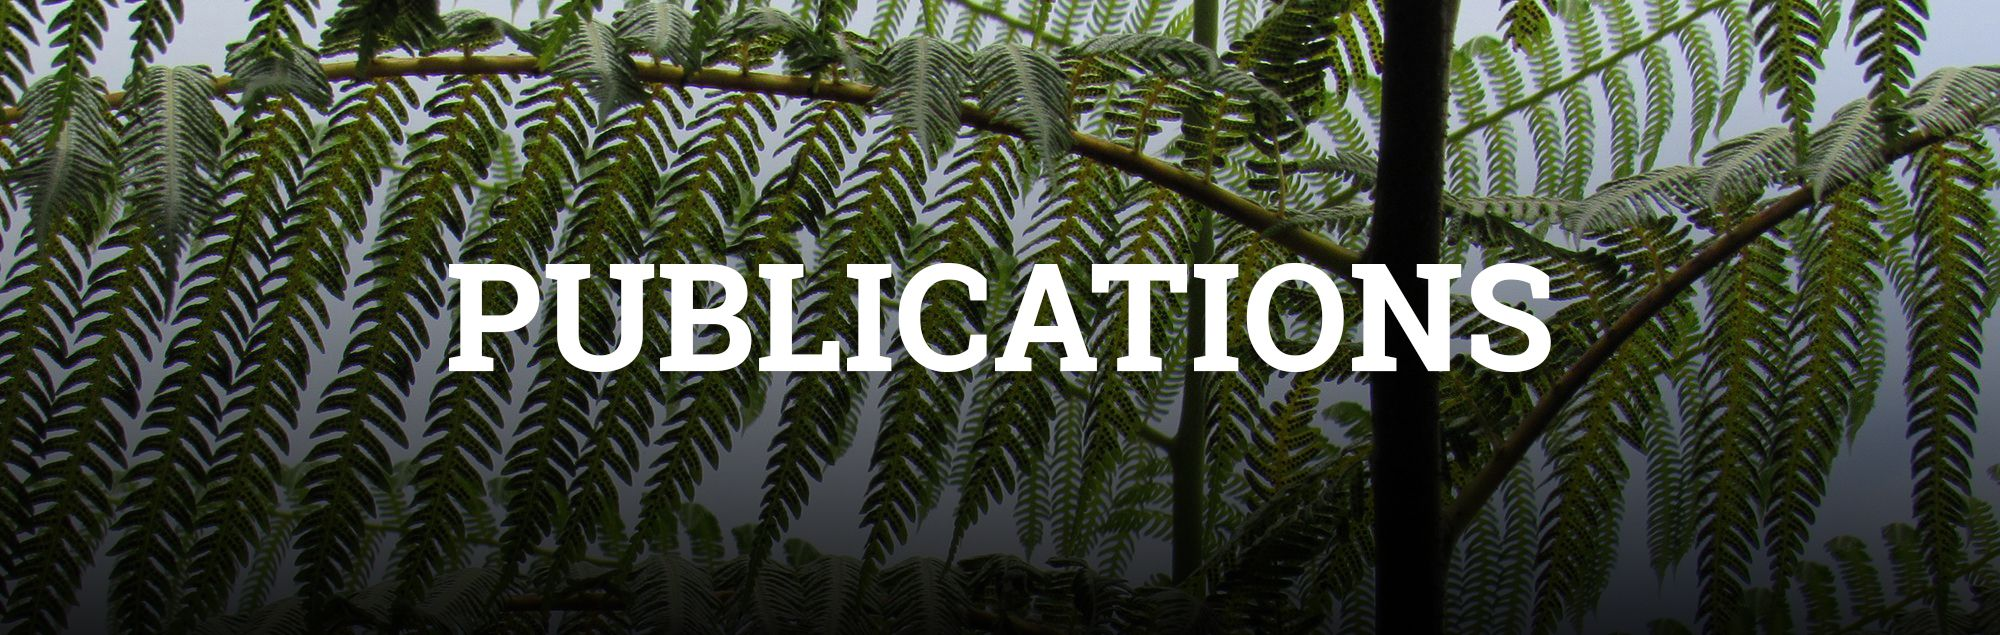 Publications Banner Image